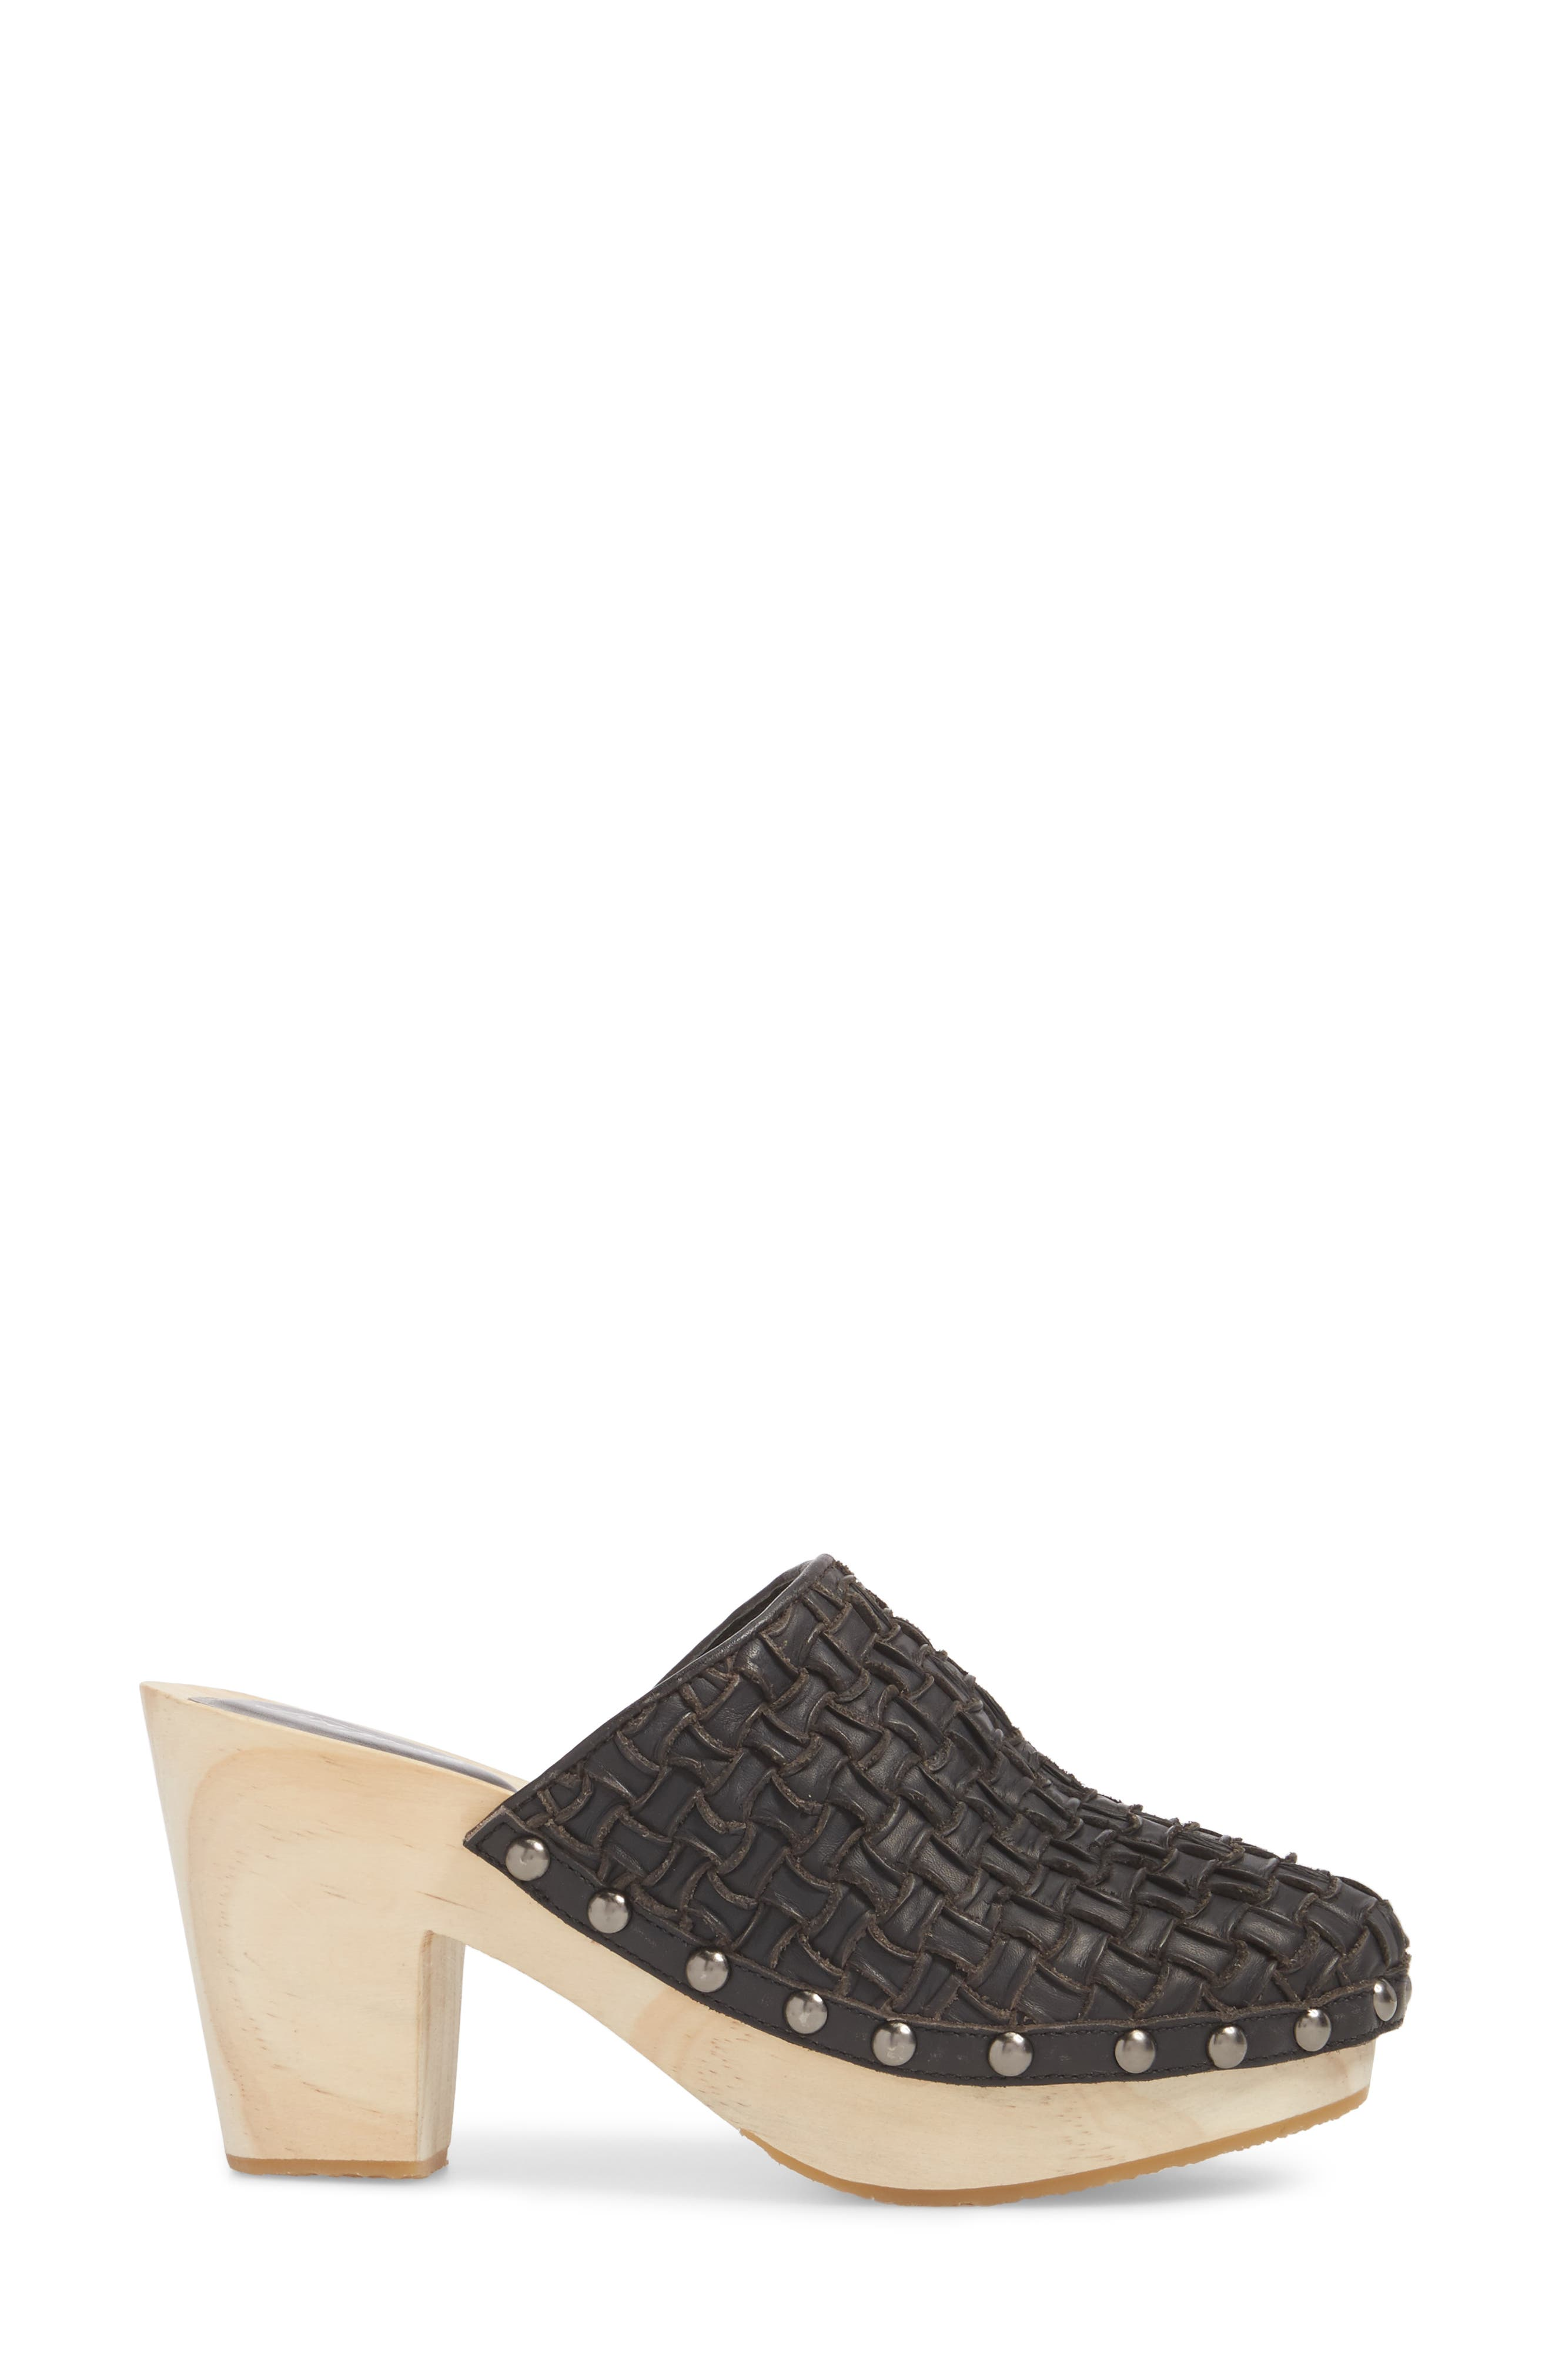 FREE PEOPLE,                             Adelaide Clog,                             Alternate thumbnail 3, color,                             001